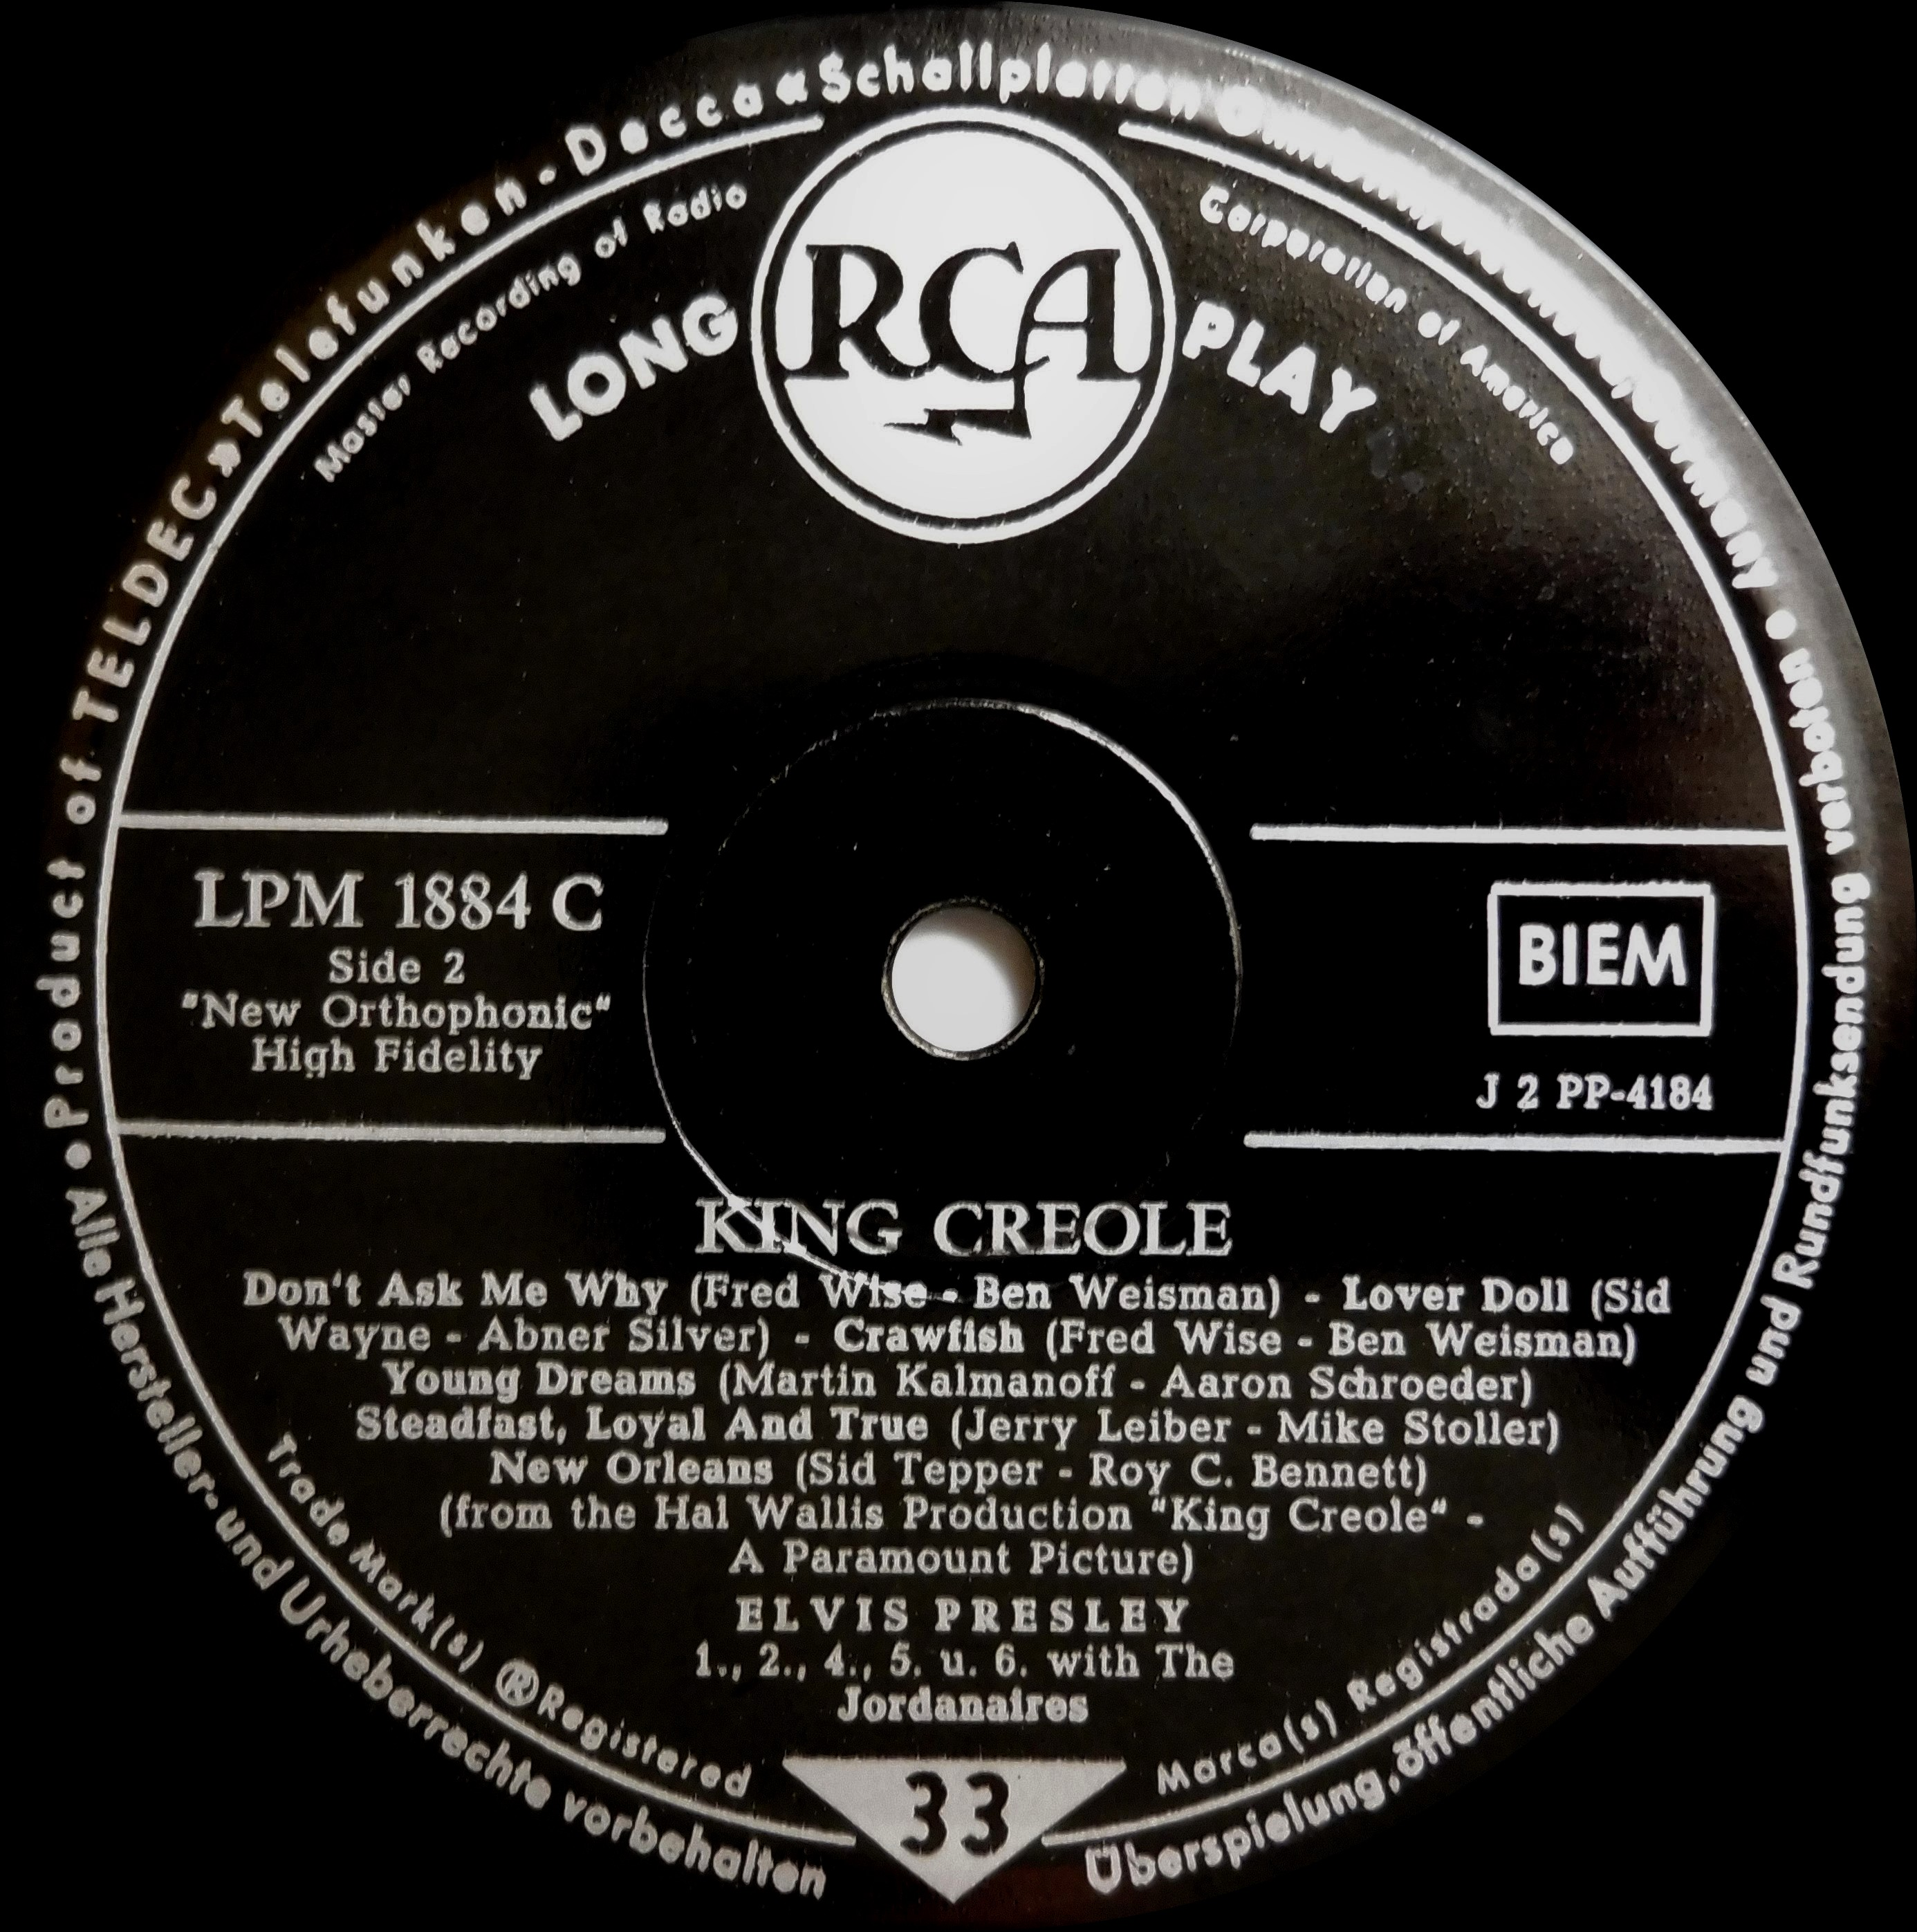 KING CREOLE Kingcreole58side2_aus8gu2r